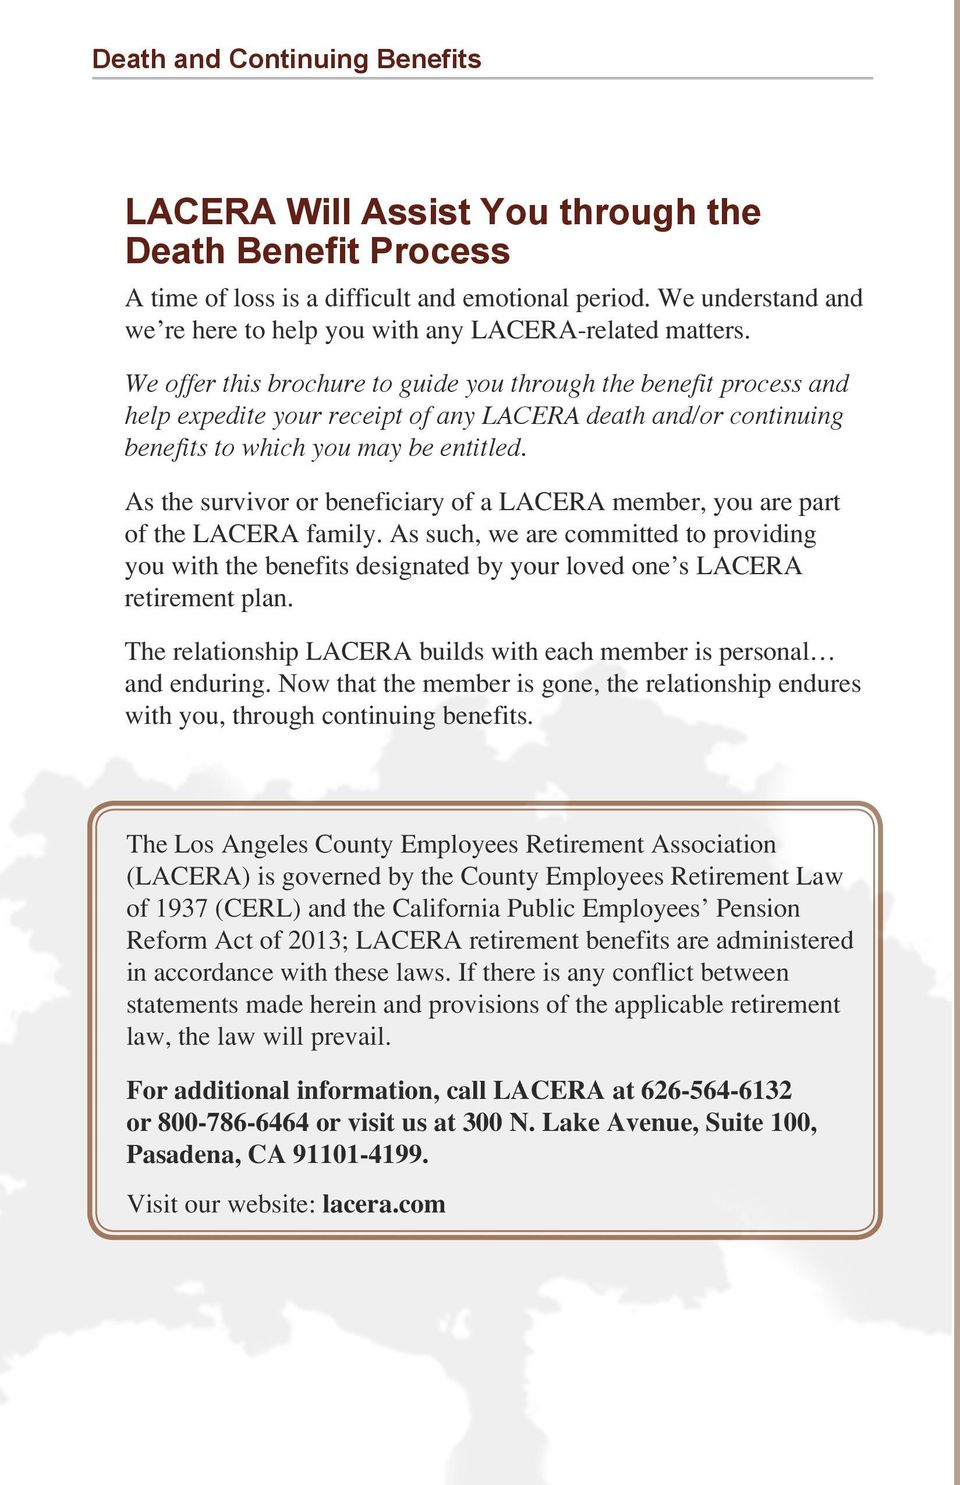 We offer this brochure to guide you through the benefit process and help expedite your receipt of any LACERA death and/or continuing benefits to which you may be entitled.